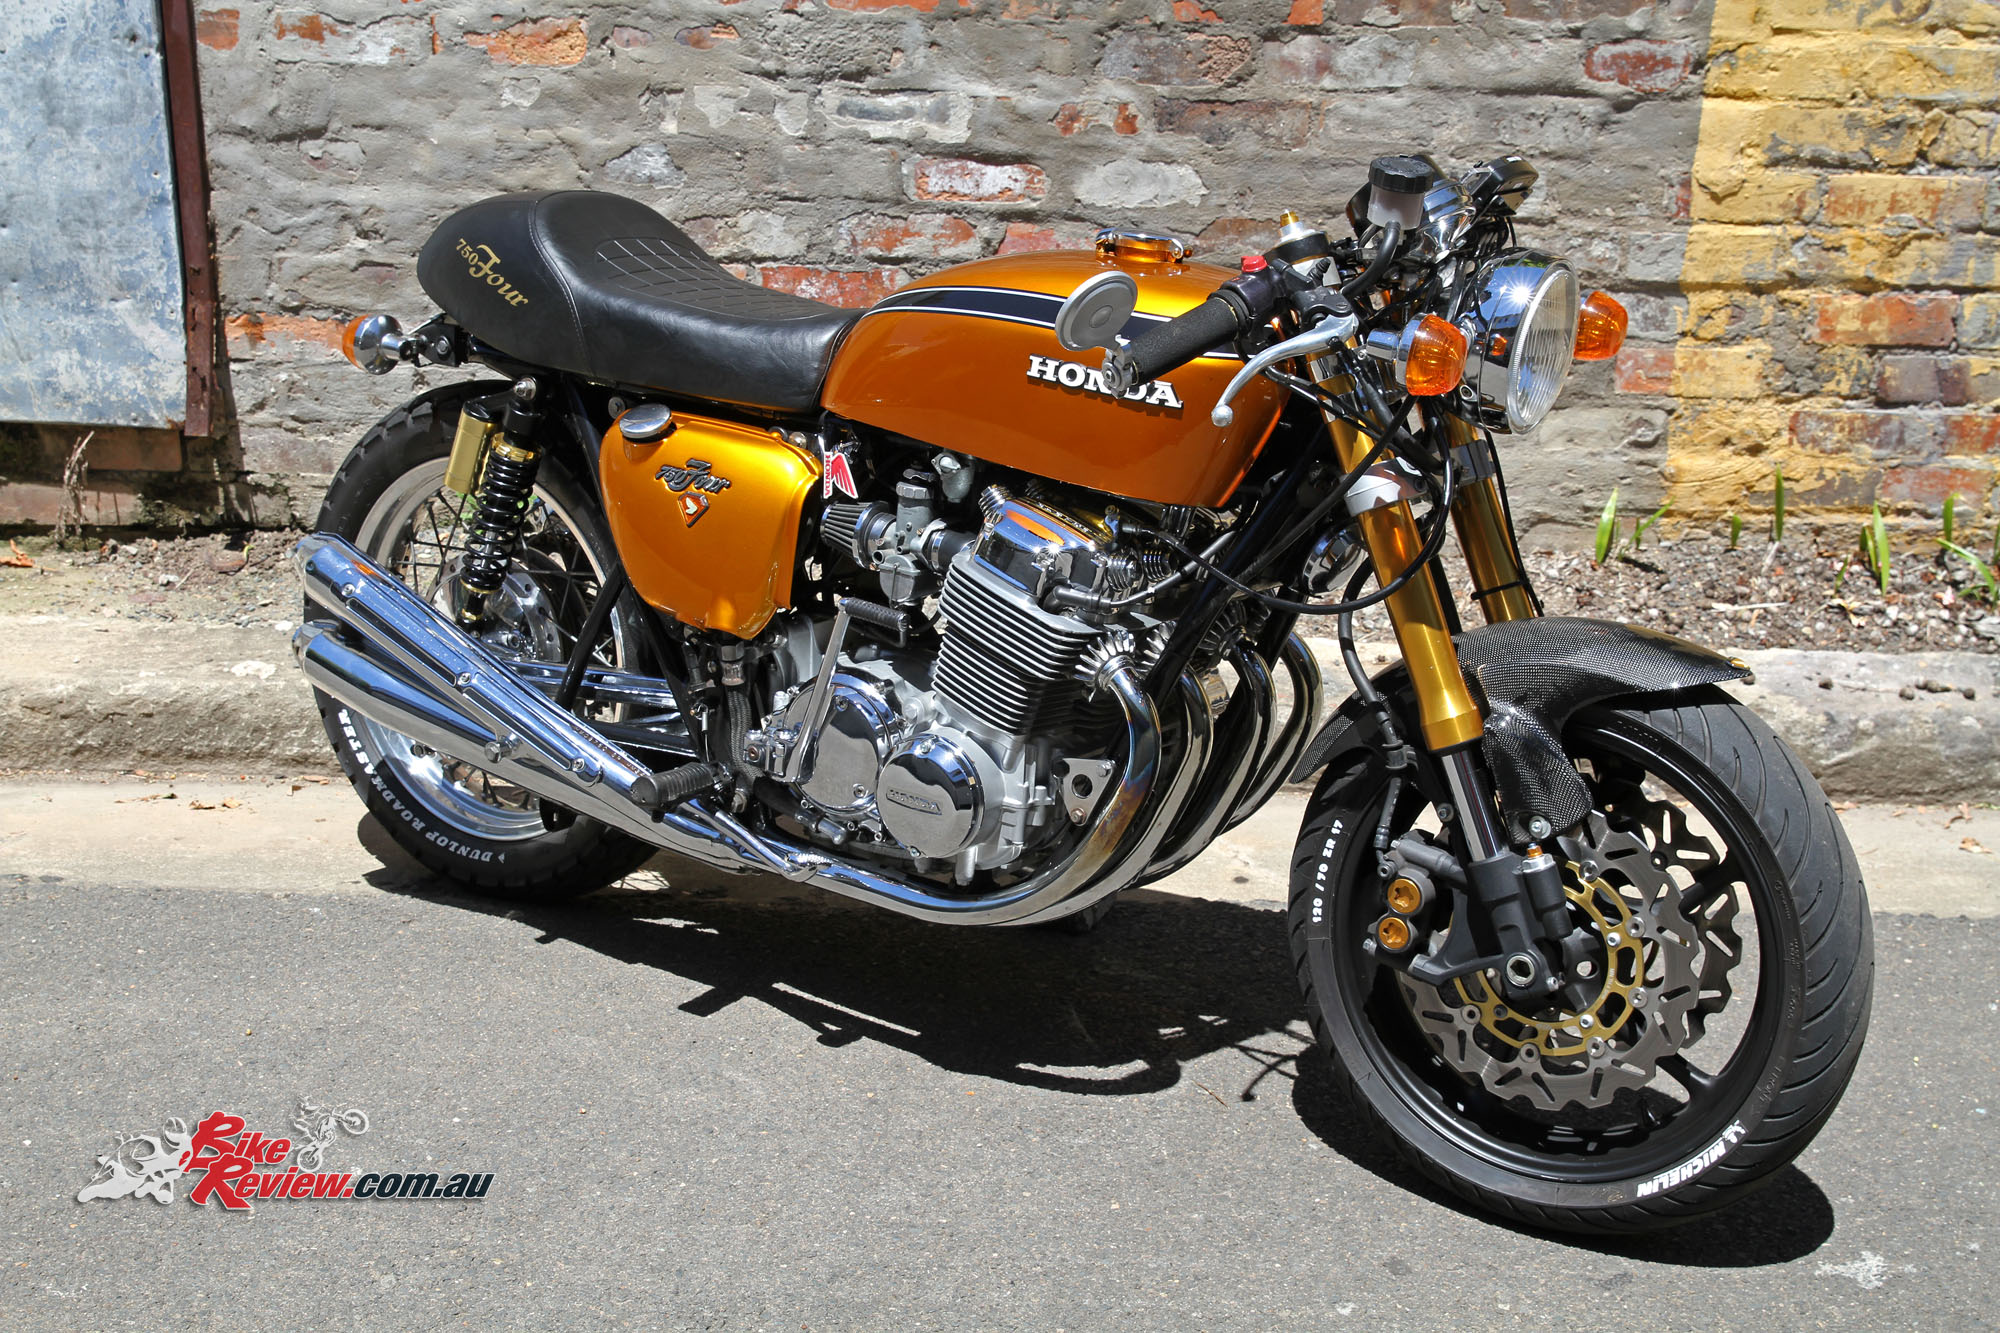 Classic Custom Honda Cb750 Four Bike Review